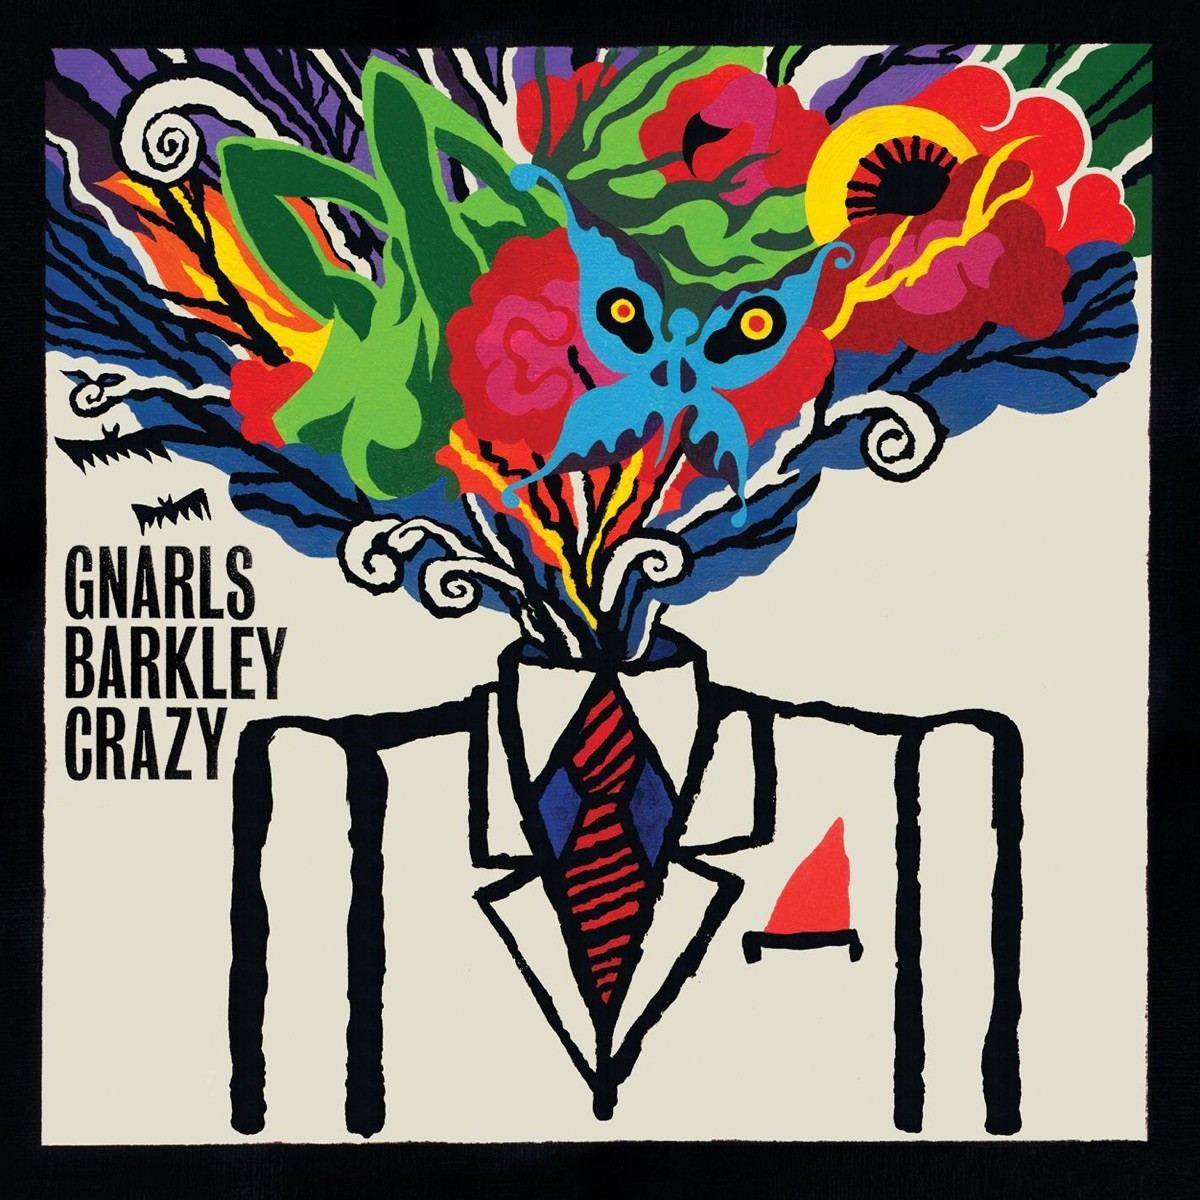 Gnarls Barkley - Crazy - Single VINYL - 5101137430